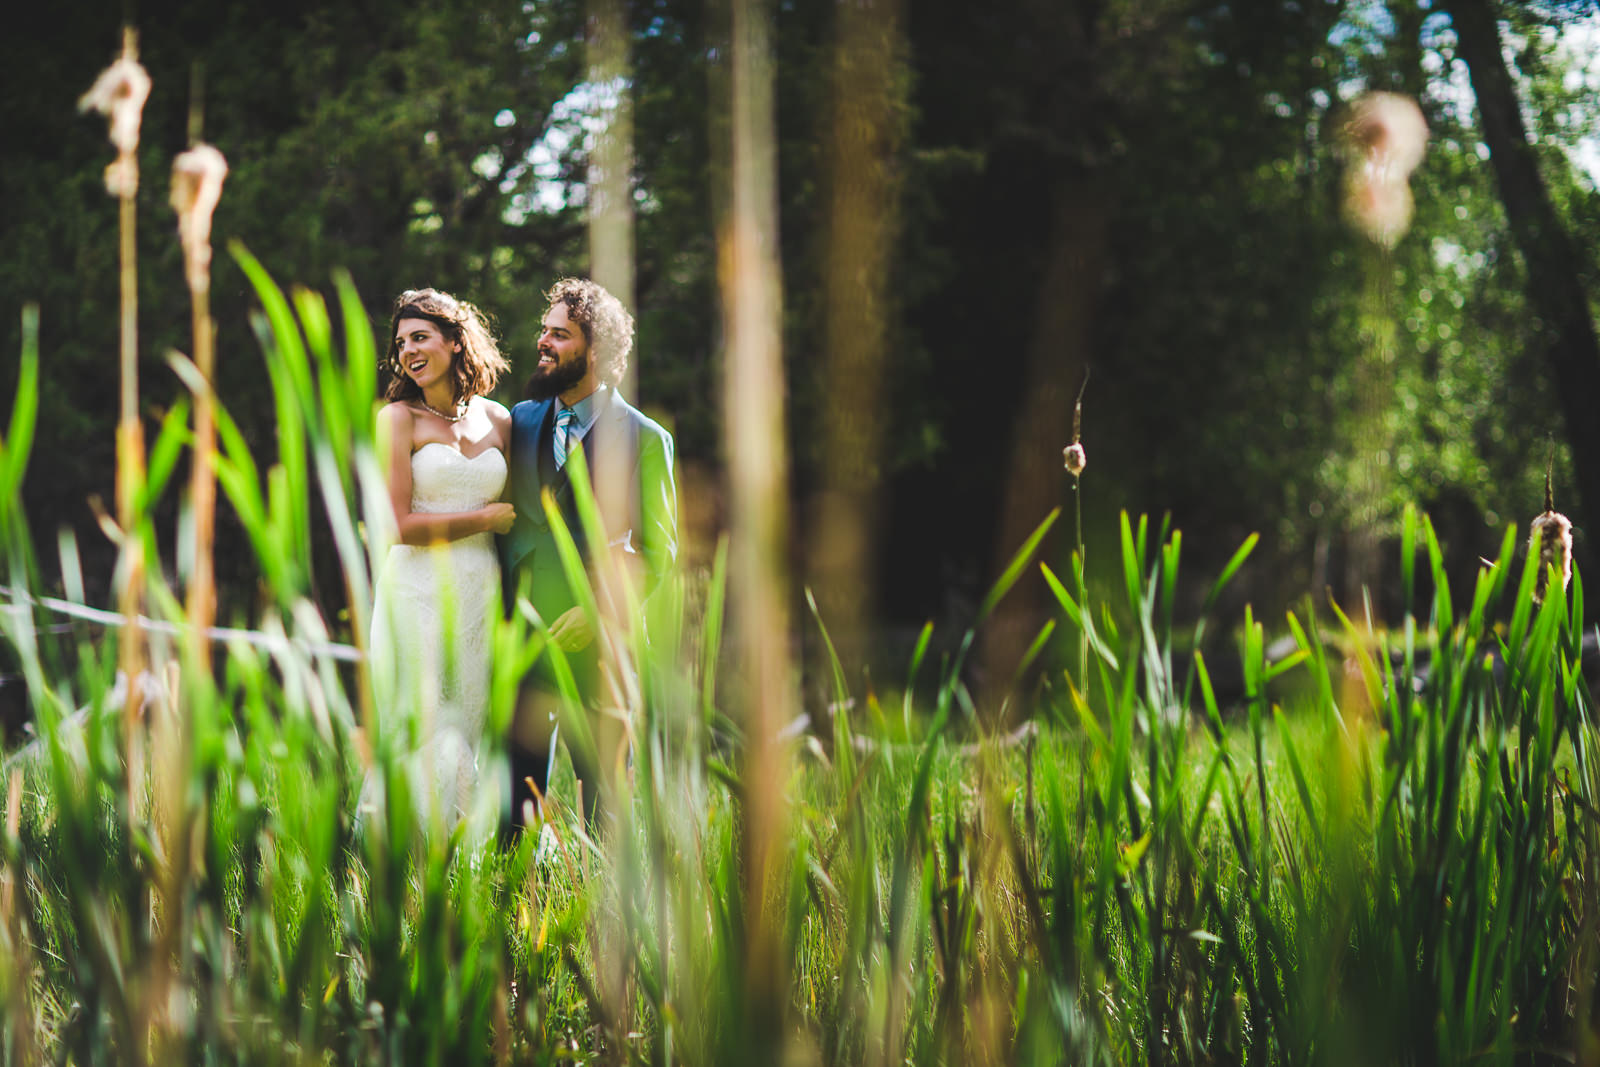 Peering through tall grasses at a wedding couple smiles looking at guests off camera